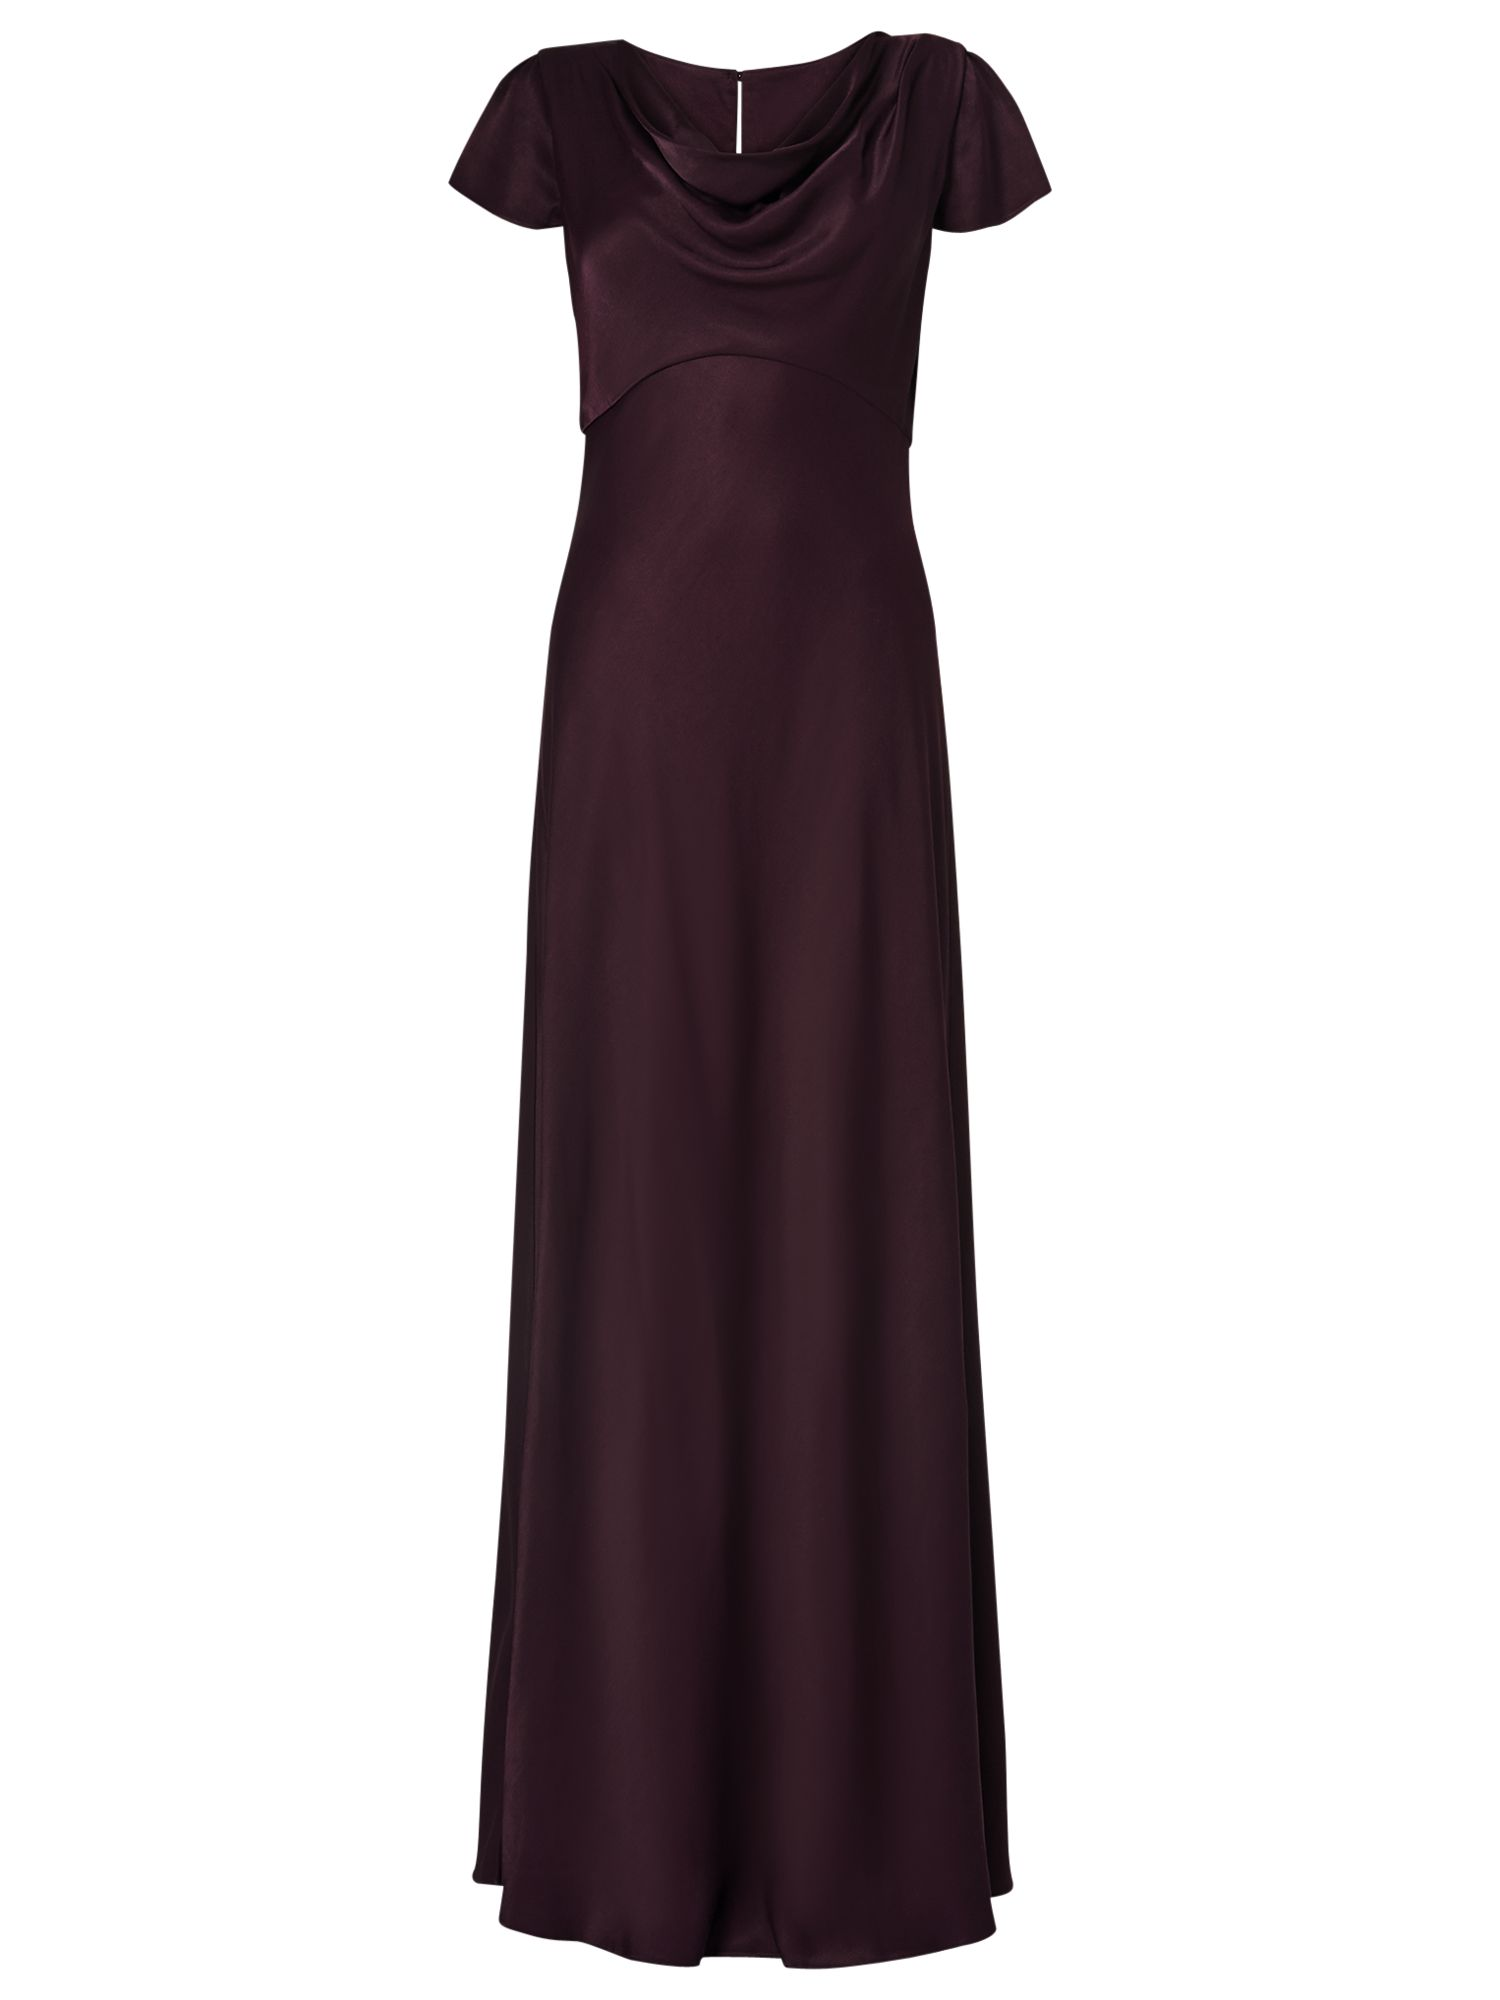 phase eight emily maxi dress blackcurrant, phase, eight, emily, maxi, dress, blackcurrant, phase eight, 6|12|14|8|18|10|16, women, womens dresses, special offers, womenswear offers, 20% off full price phase eight, gifts, wedding, wedding clothing, adult bridesmaids, fashion magazine, brands l-z, inactive womenswear, 1833160